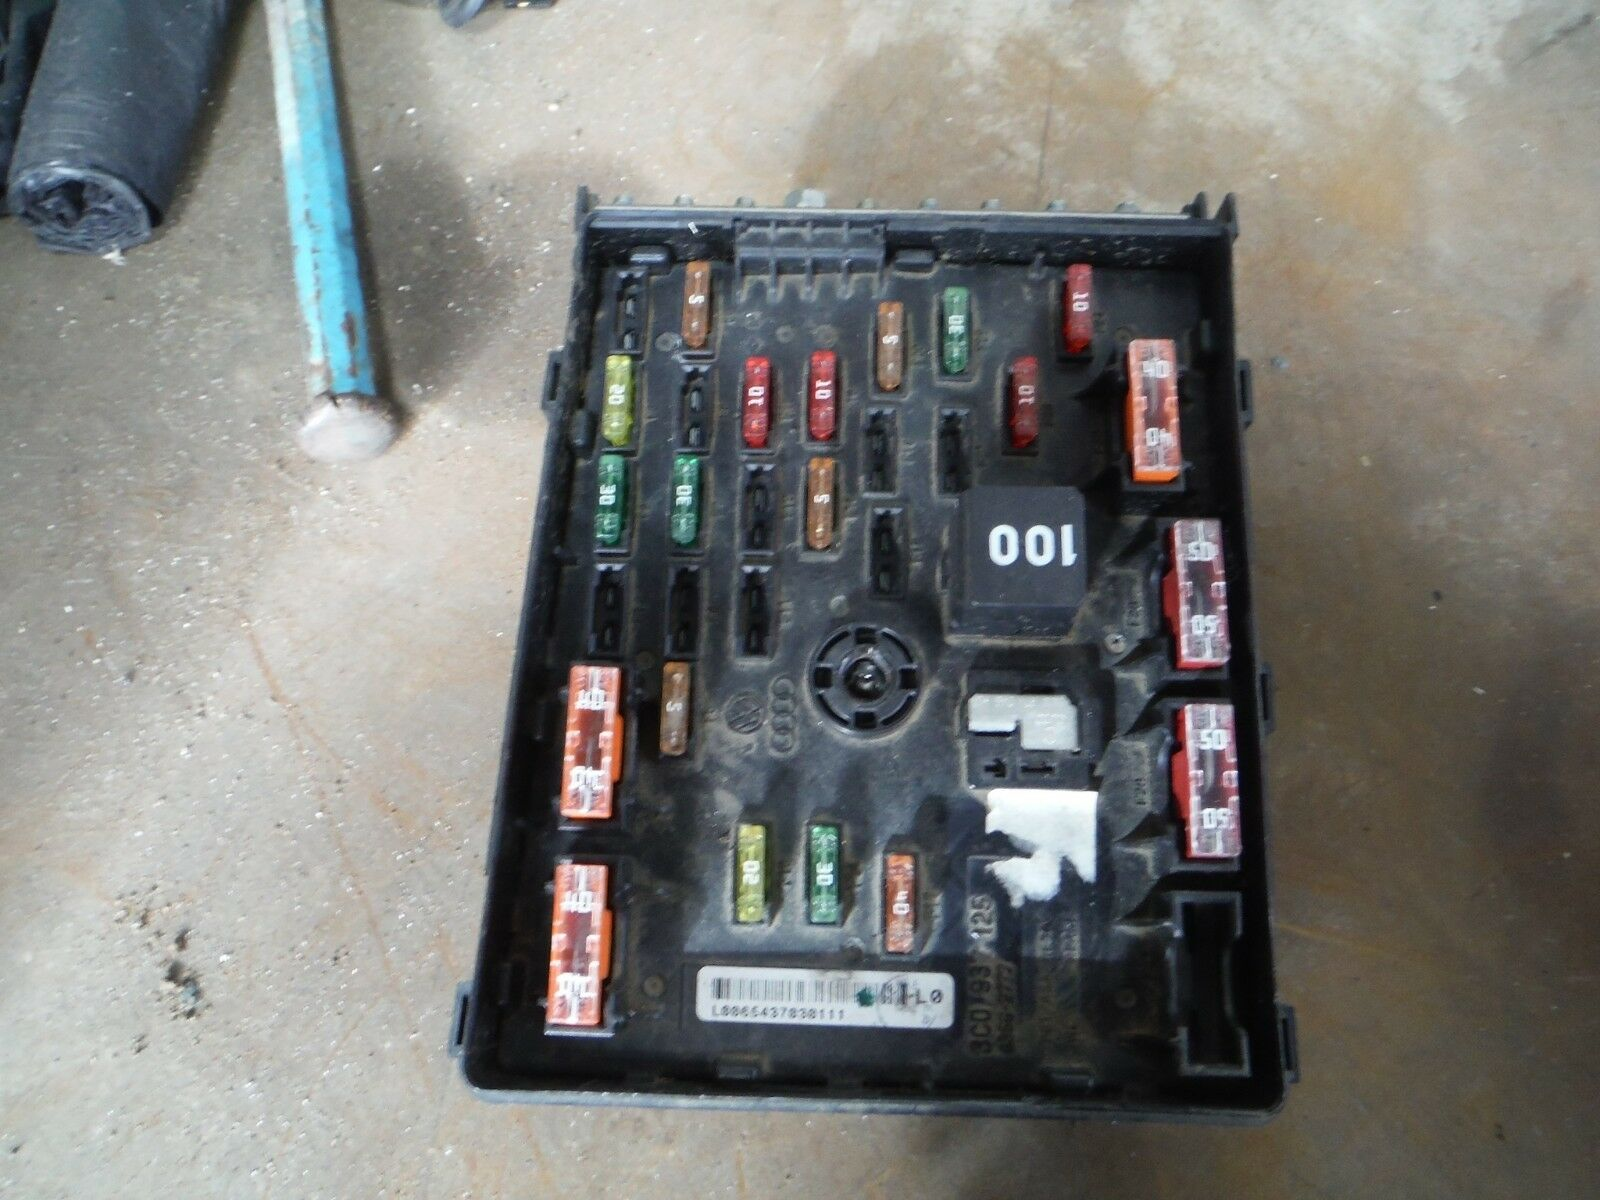 2012 Vw Passat B7 16 Tdi Fuse Box 3c0 937 1252010 2014 2000 1 Of 2only Available